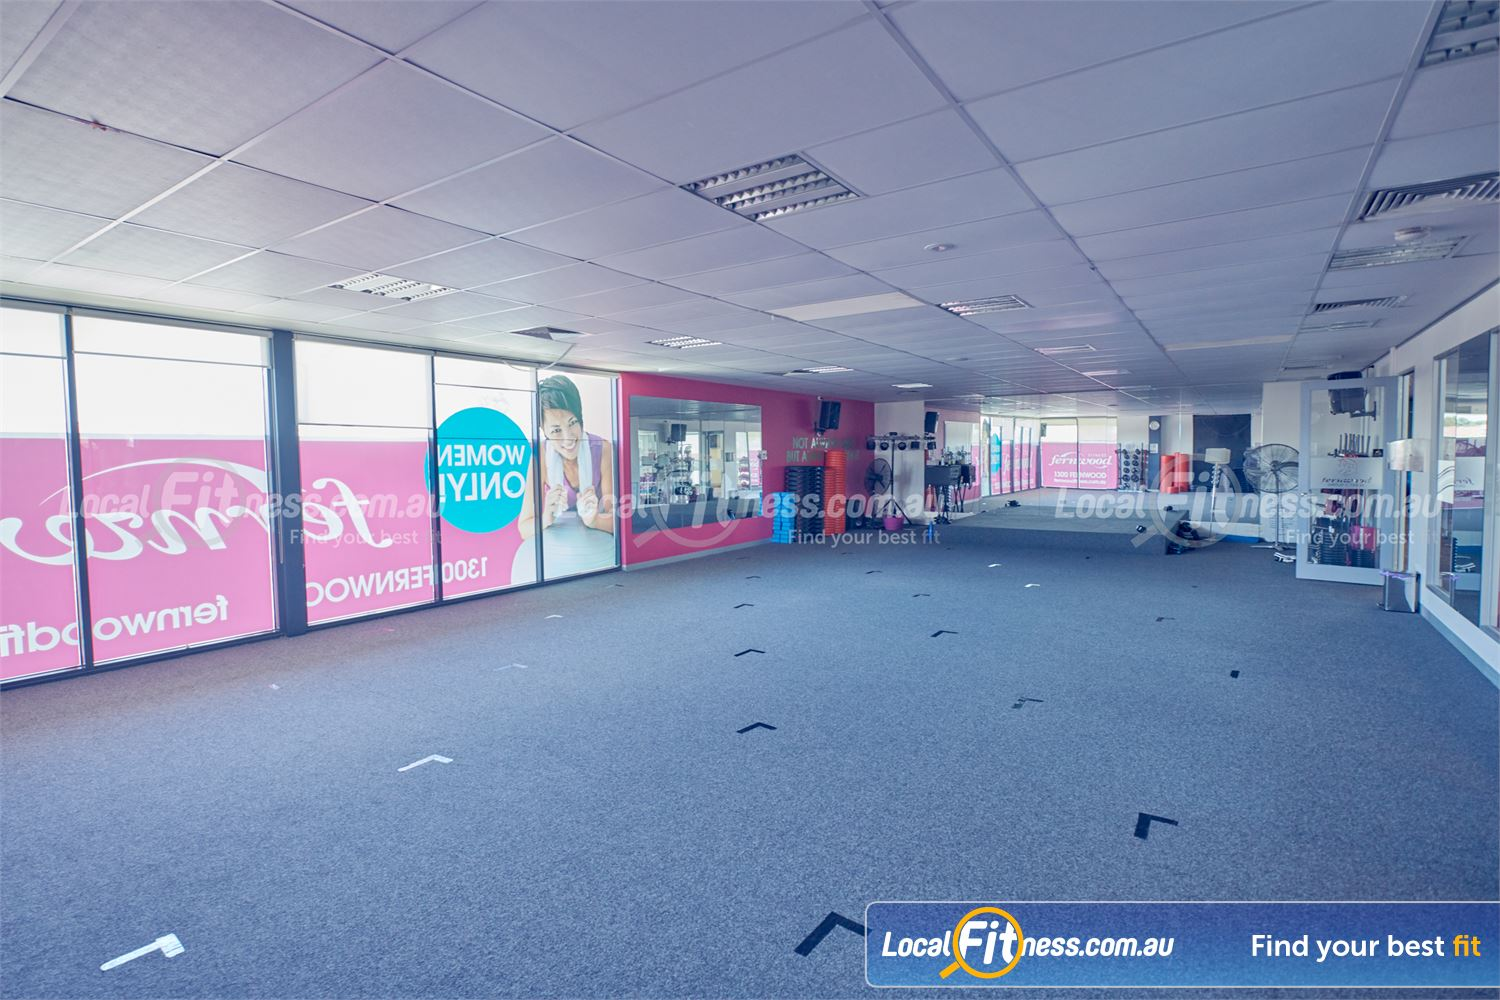 Fernwood Fitness Cairnlea Dedicated Cairnlea group fitness studio with over 50 classes per week.